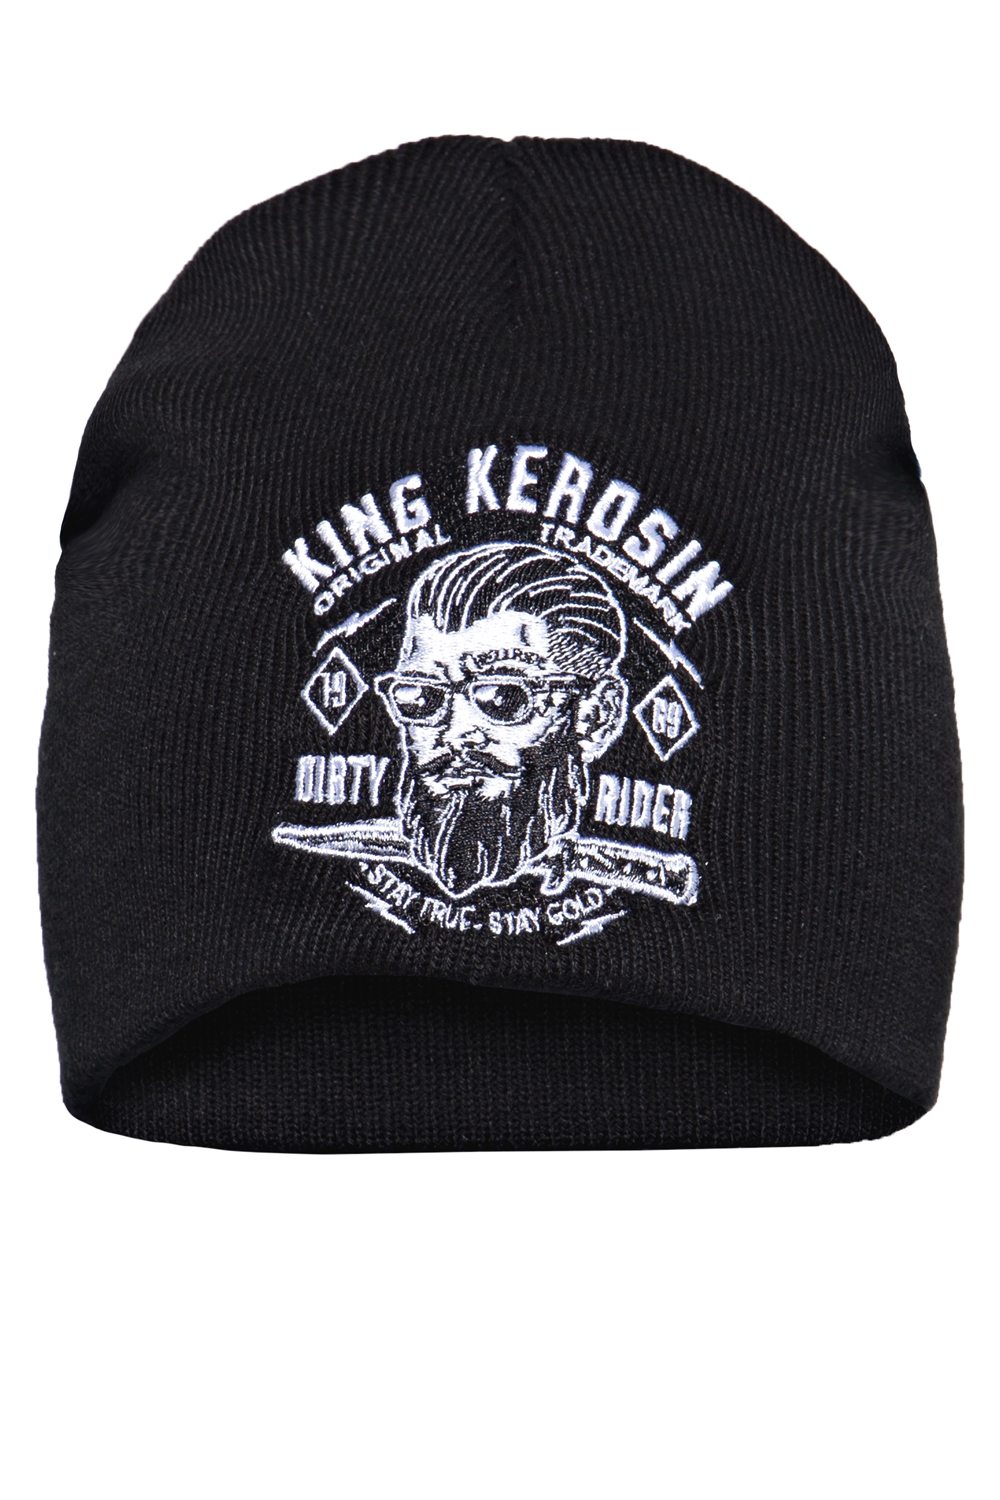 King Kerosin Mütze Strickmütze Stickerei Dirty Rider Rockabilly Biker Beanie